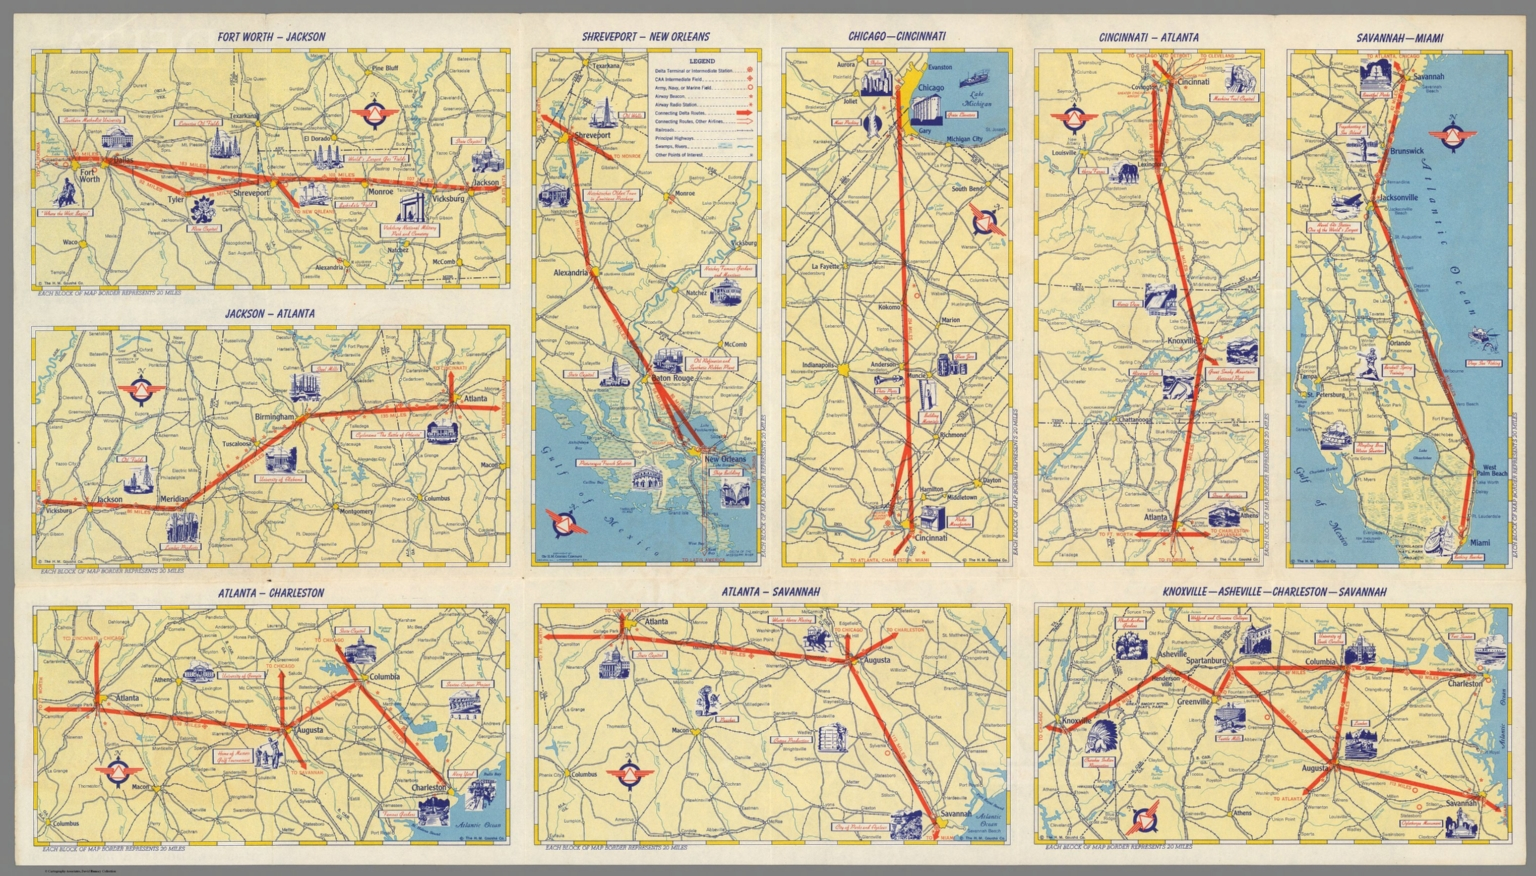 Delta Airlines system route maps - David Rumsey Historical ... on railroad route maps, delta airlines international maps, airline fares, shipping route maps, jetblue route maps, airline schedules, airline flights, air route maps, klm route maps, airline malaysia airbus a380, airline british airways, transportation route maps, stagecoach route maps, airline jobs, delta global route maps, tour operator route maps, expressjet route maps, flight route maps,